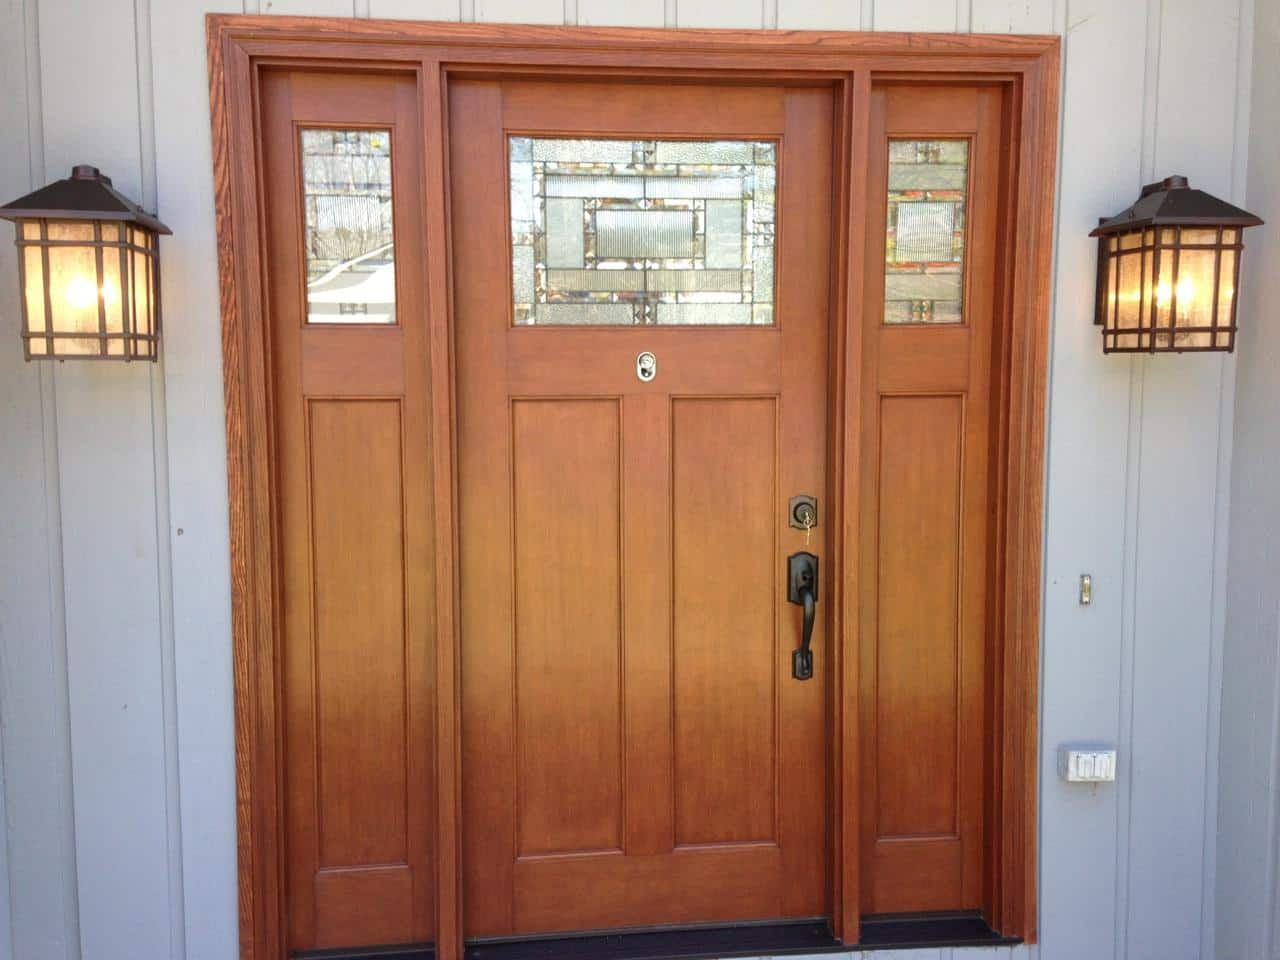 960 #7F3E26 Chicago's Best Fiberglass Entry Doors Sahara Window And Dors picture/photo Fibreglass Entrance Doors 41391280